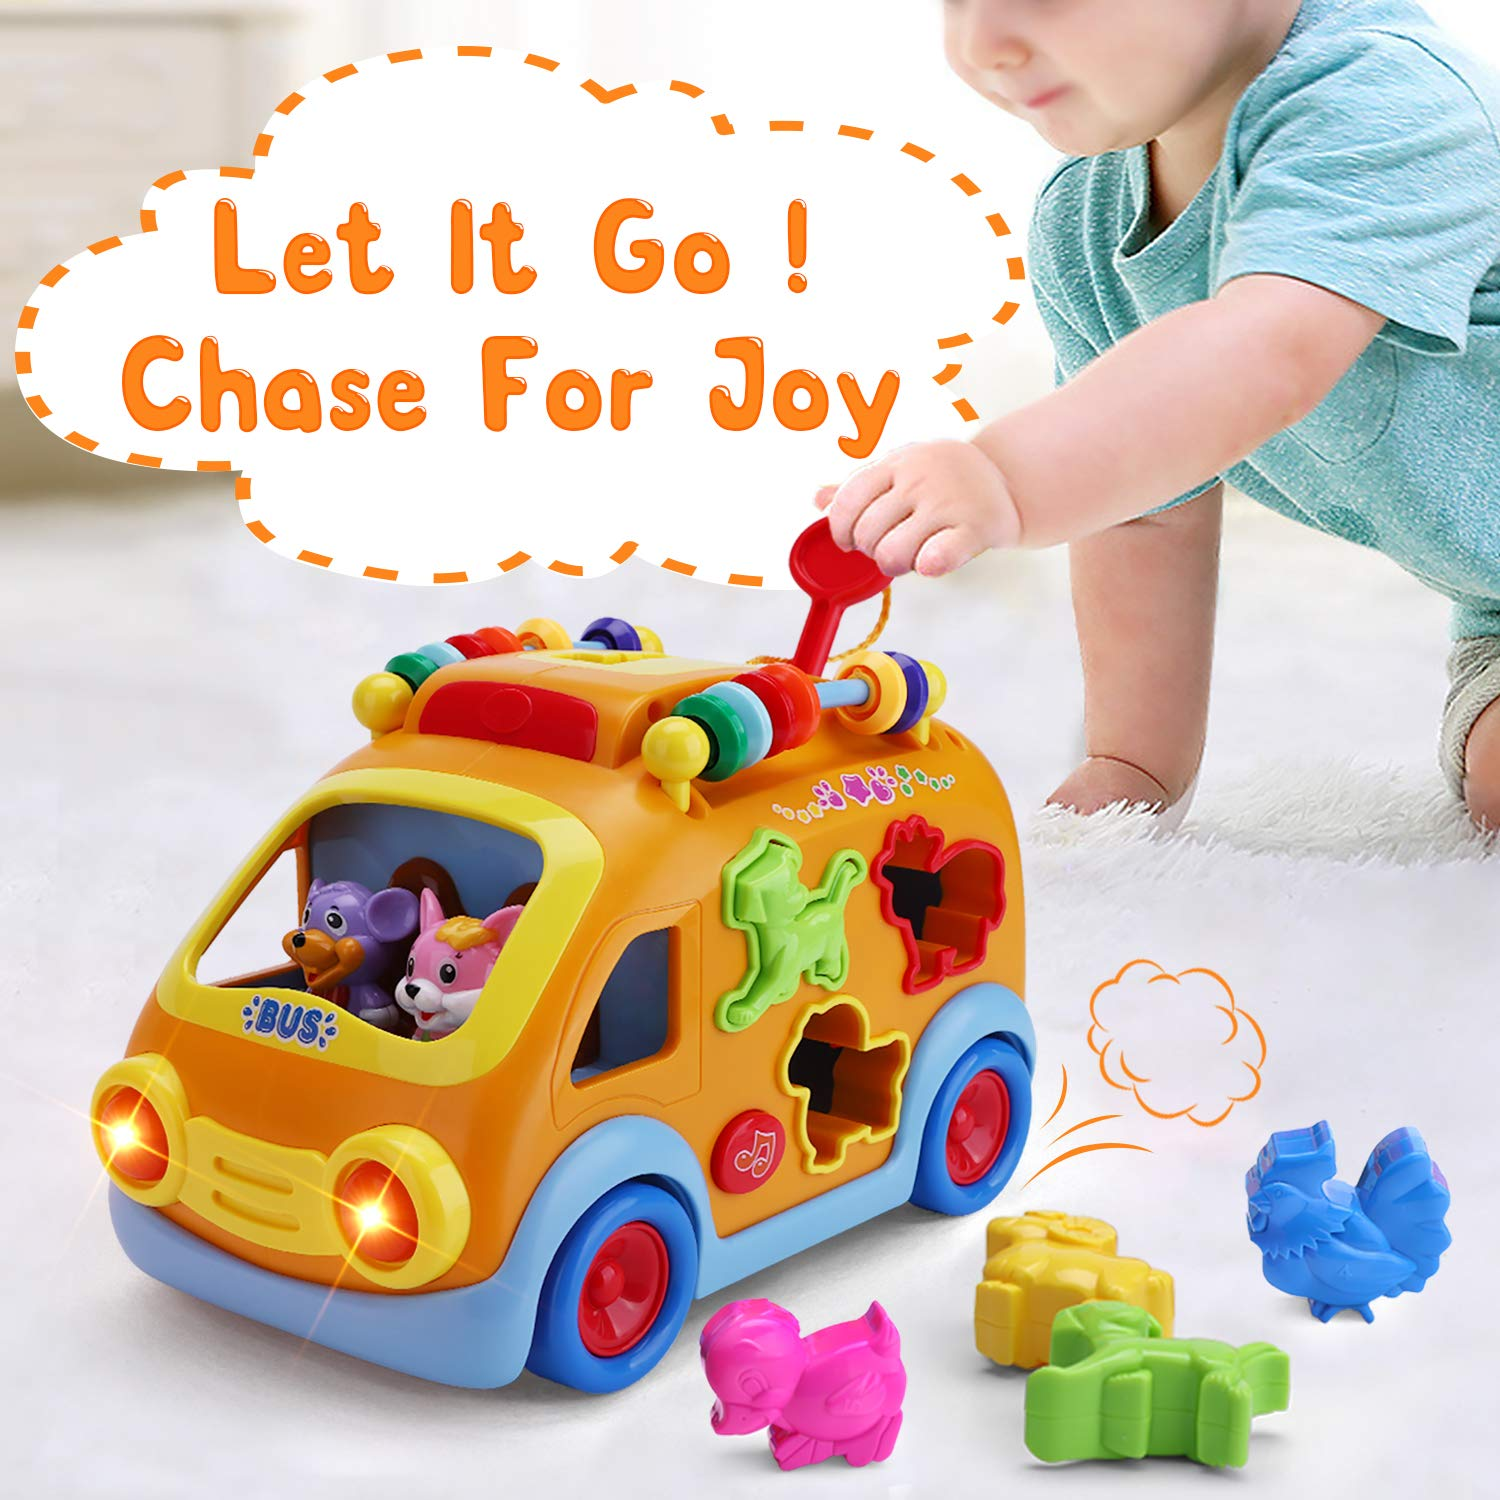 iPlay, iLearn Electronic Musical Bus, Baby Sensory Toy, 3D Animal Matching Car w/ Gear, Early Development, Learning, Educational Gift for 1, 2 Year Olds Girls Boys Toddlers Kids by iPlay, iLearn (Image #5)